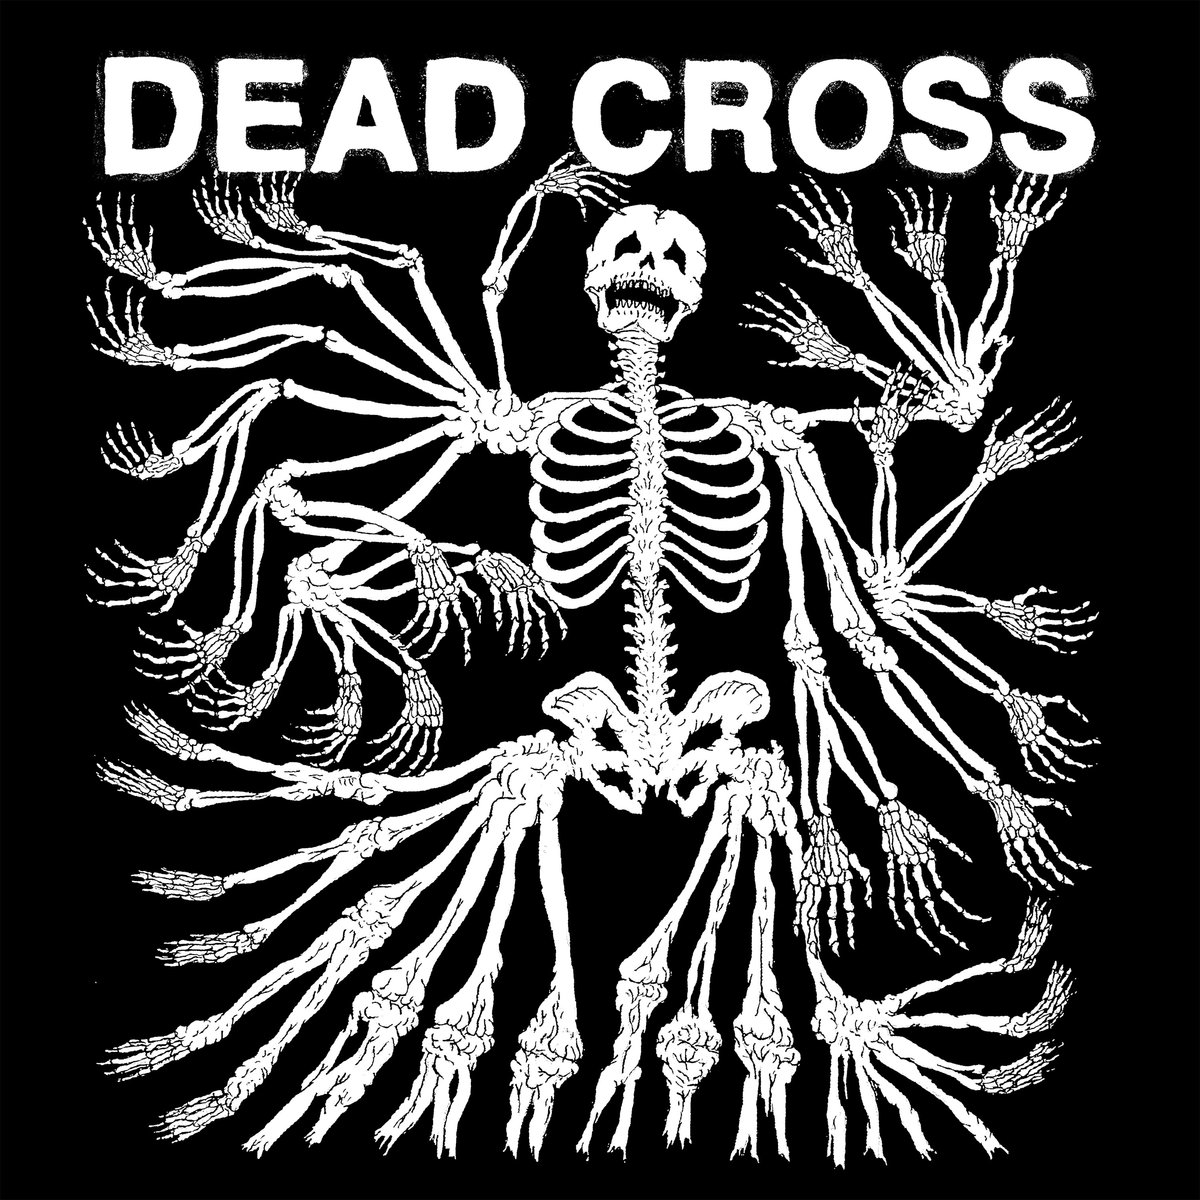 Dead Cross album cover